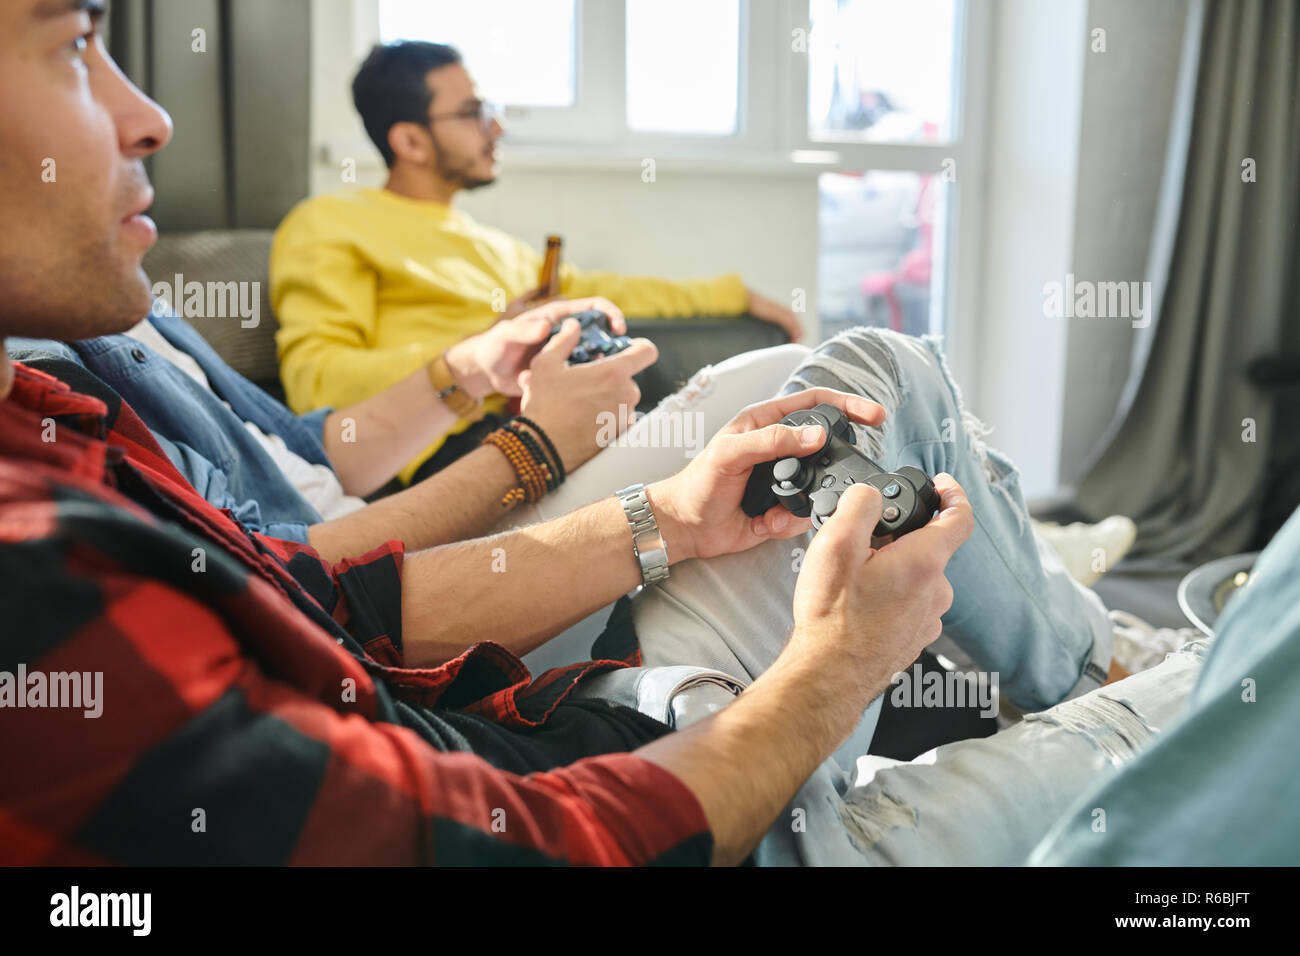 Men playing games with joystick - Stock Image